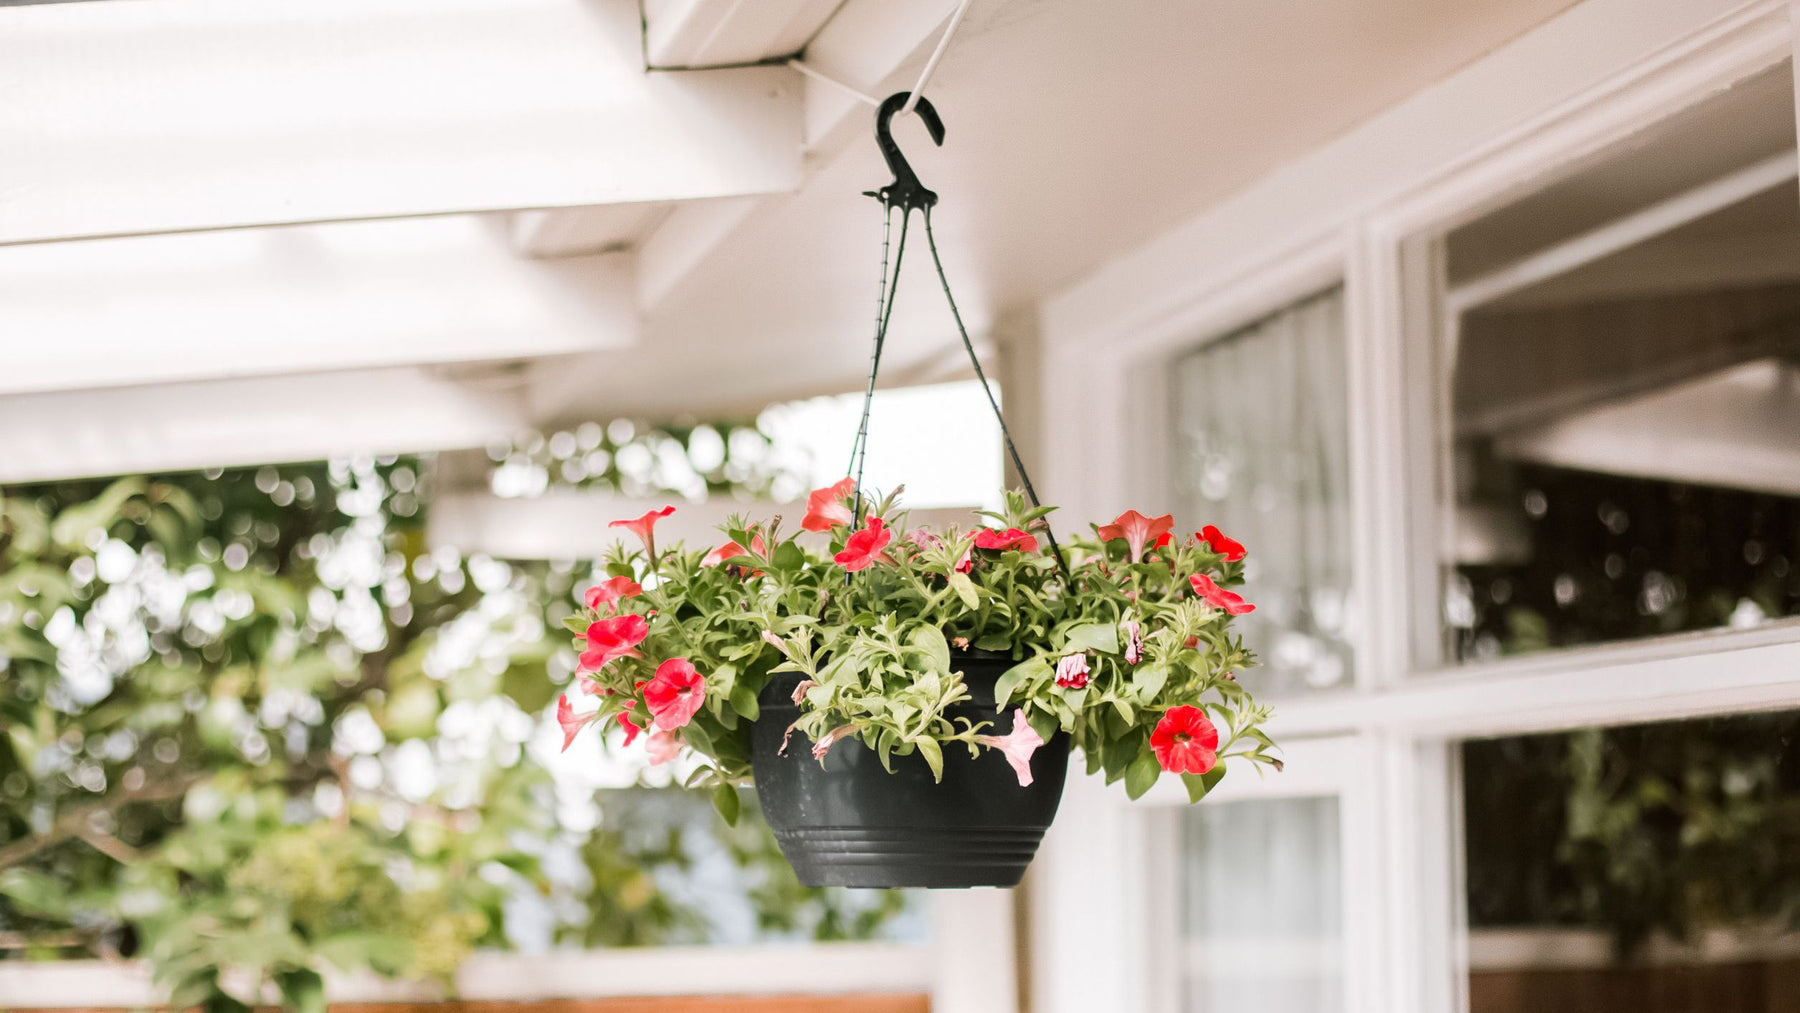 Top 10 Plants For Hanging Basket to Decorate Your Home